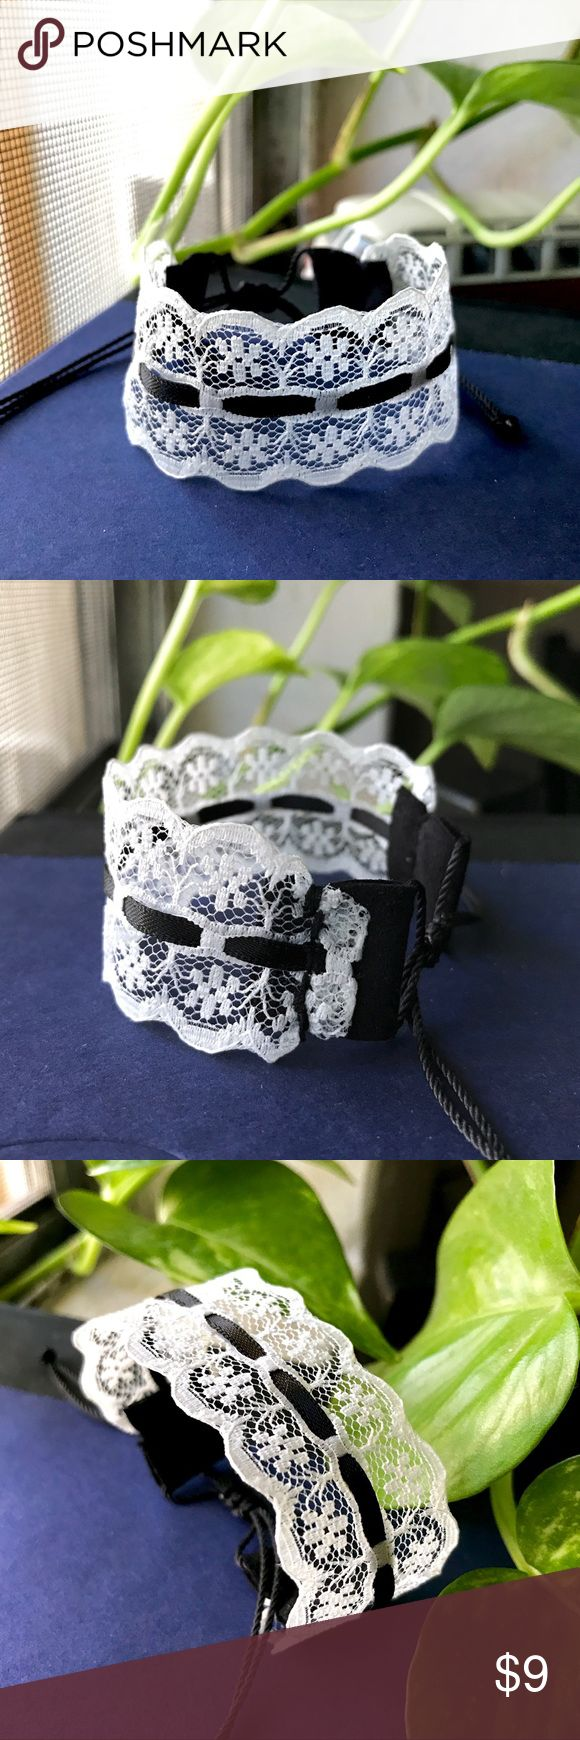 Vintage White Lace Black Suede Bracelet Bundle for 10% off + FREE Bracelet  •This delicate white lace trim & black satin ribbon running through center, finished with black suede on each end & nylon thread closure knot for a secure fit. Lovely retro style!  •Trim width is 1 inch (100% cotton)   •ⓢⓘⓩⓔ: Adjustable knot! (Fits 5 inches to 8.5 inches)   •Coachella/BurningMan/rock/rockabilly/edc/raves/gypsy/bohemian/vintage/90s/goth/gothic/dark/pinup Handmade by me! Jewelry Bracelets